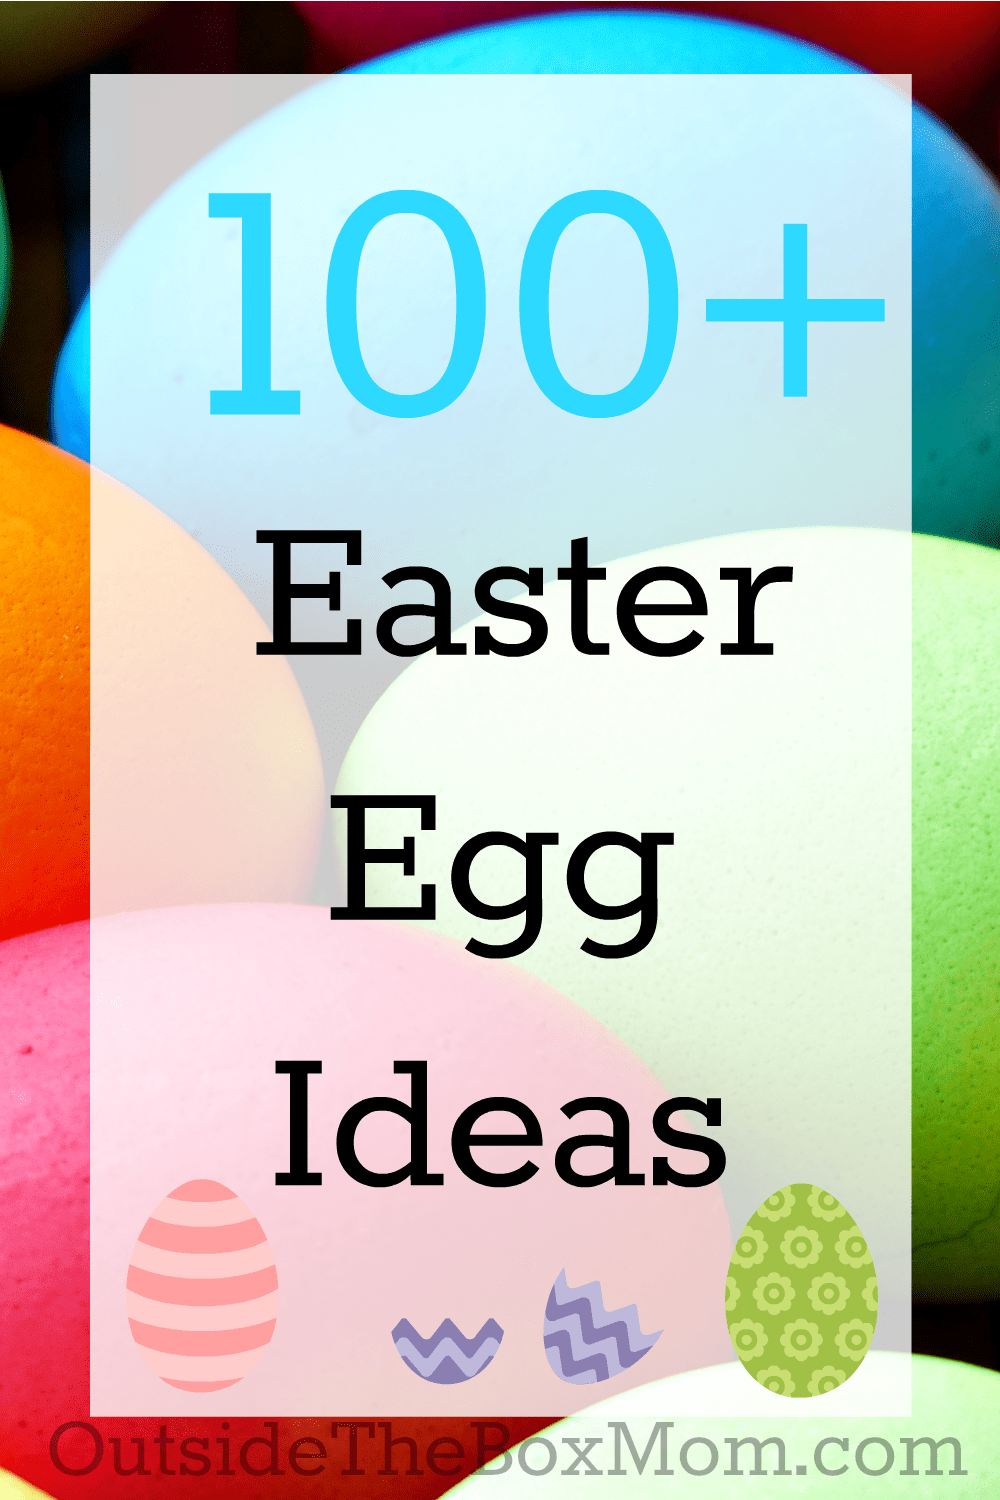 Easter egg ideas| OutsideTheBoxMom.com